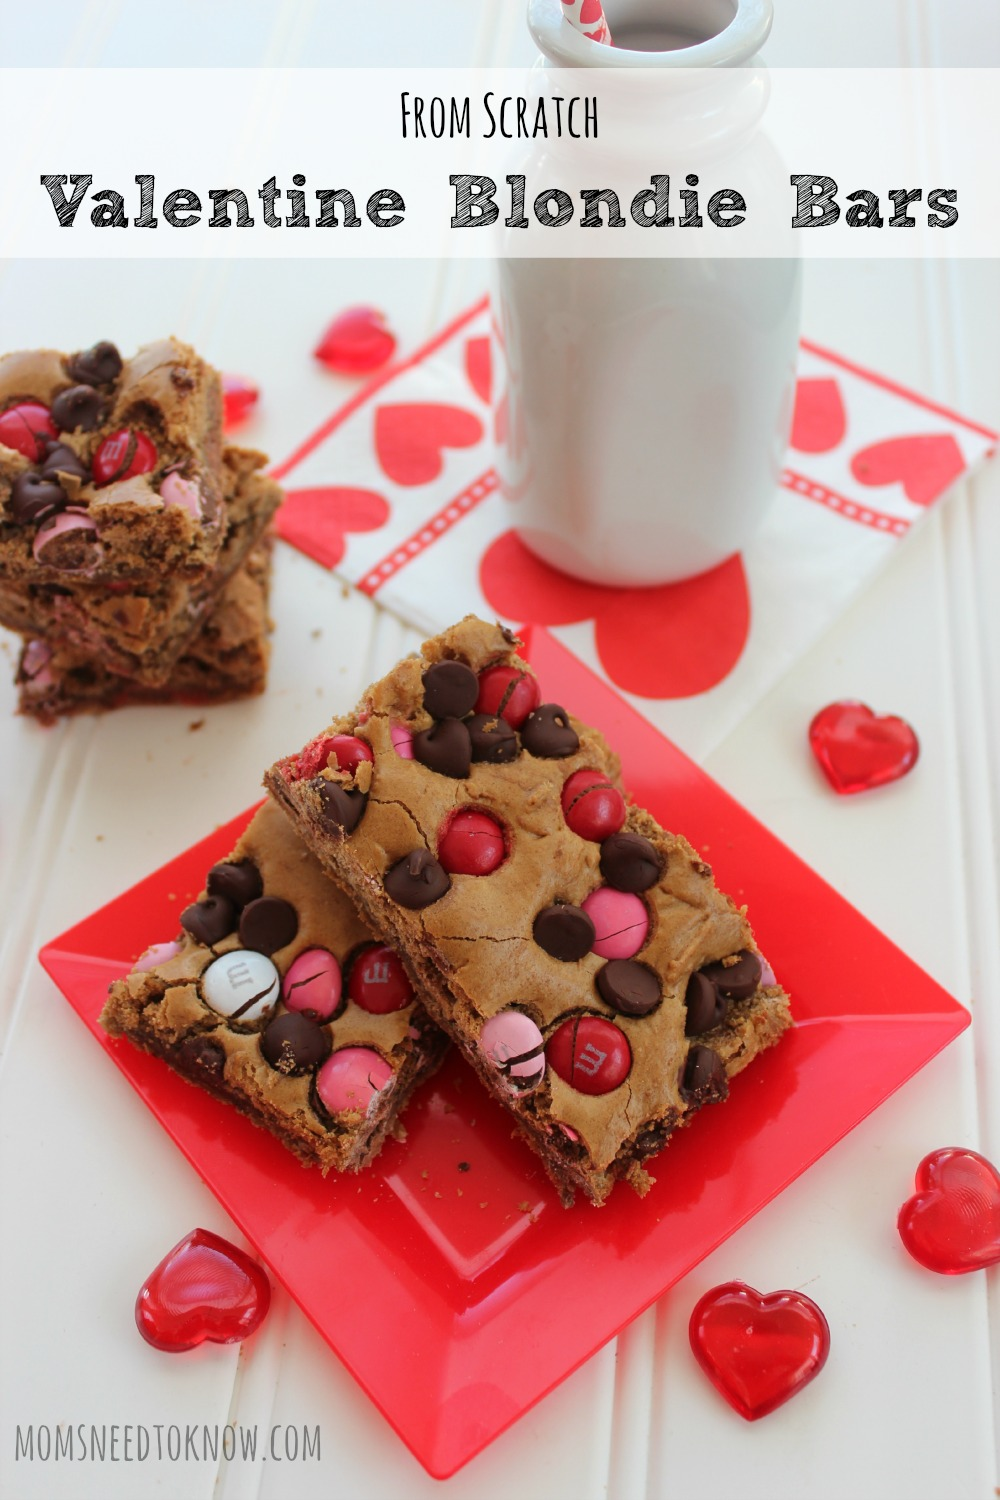 Valentine Blondie Bars from Scratch